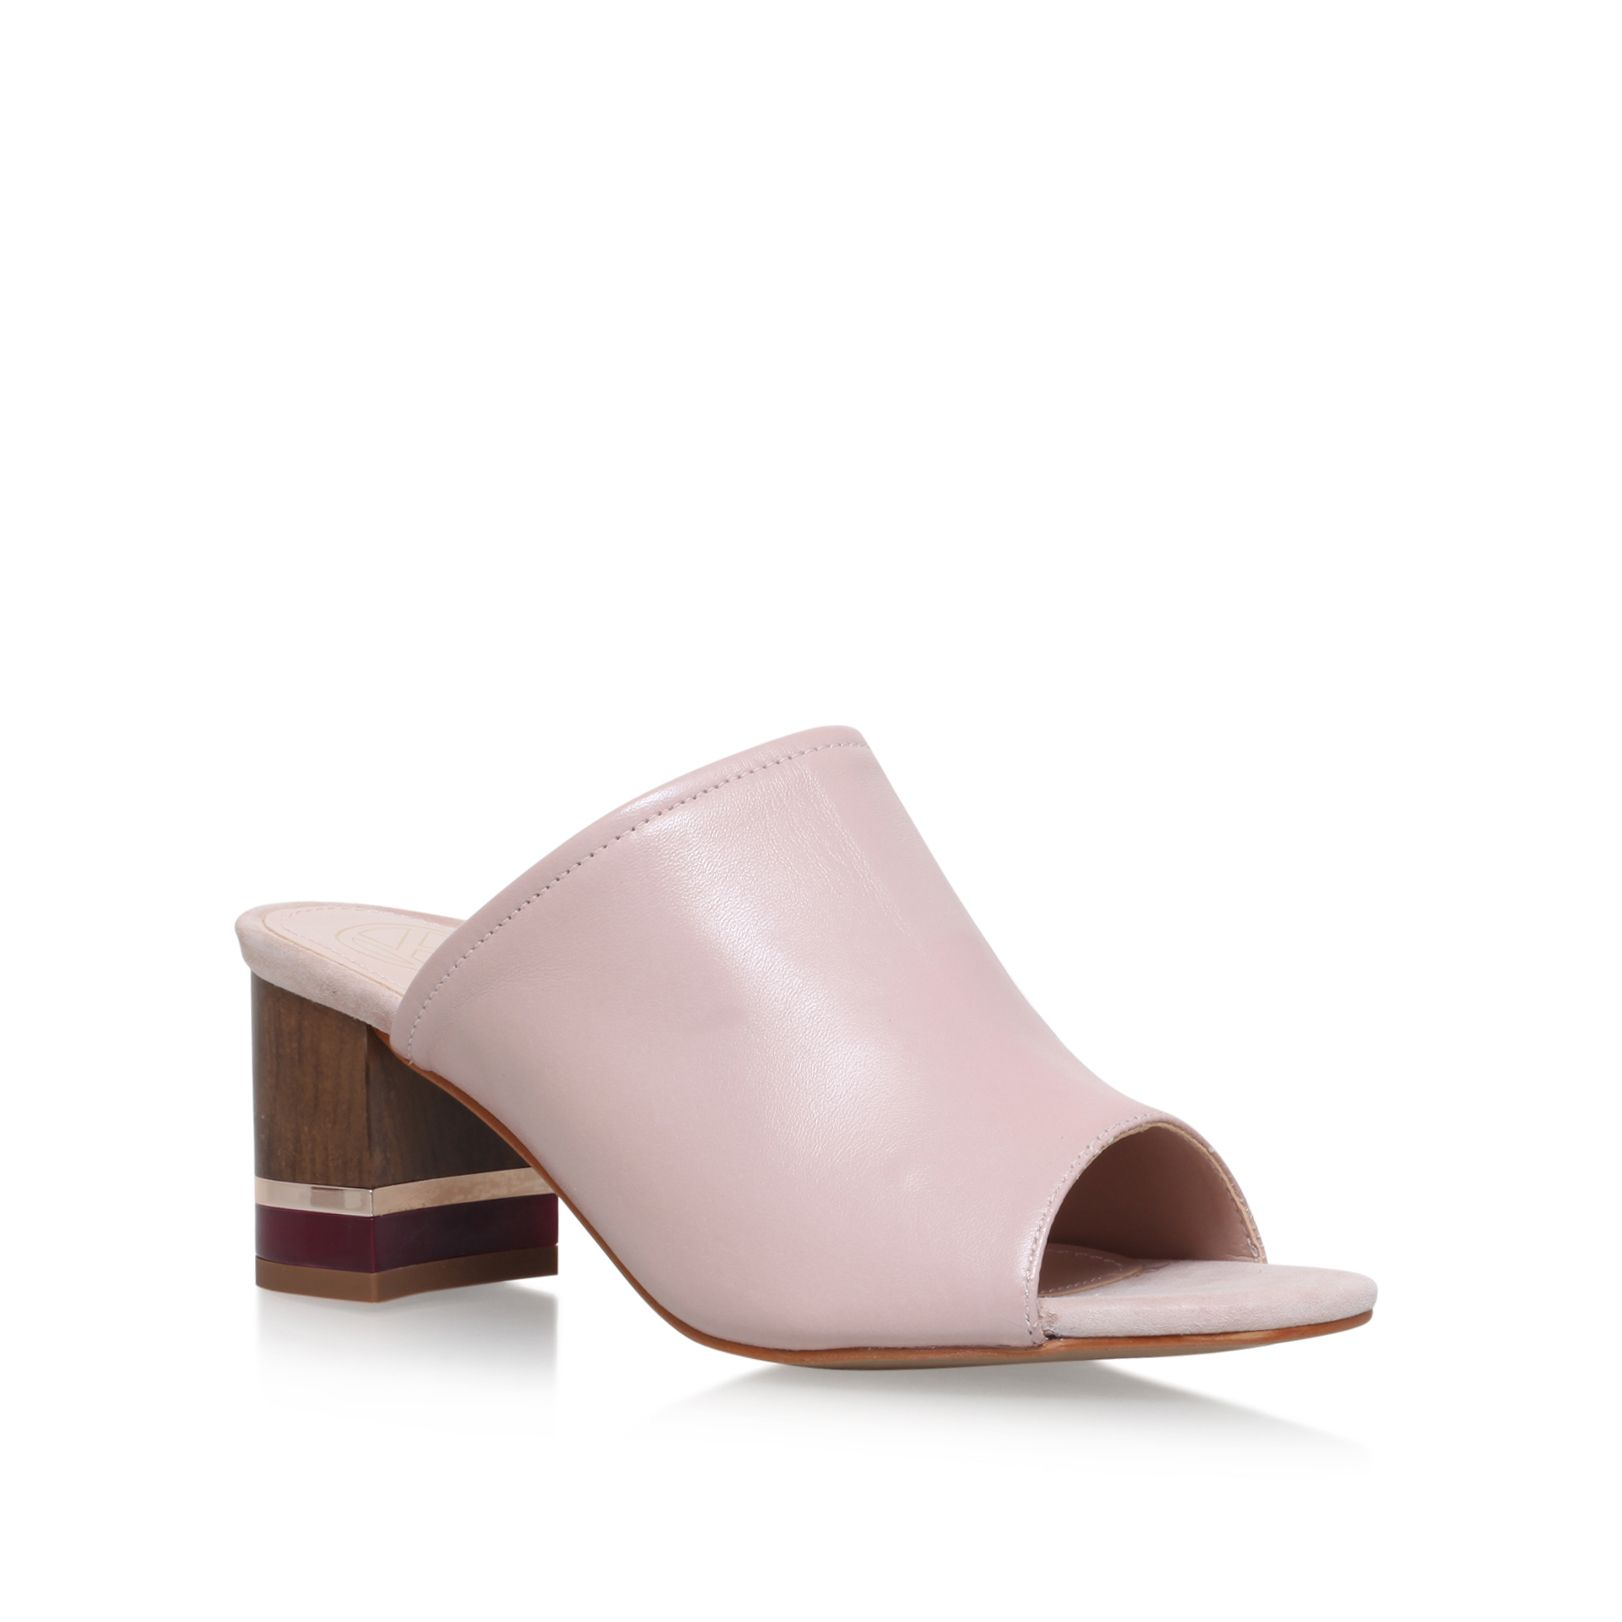 KG Hector mules, Light Brown